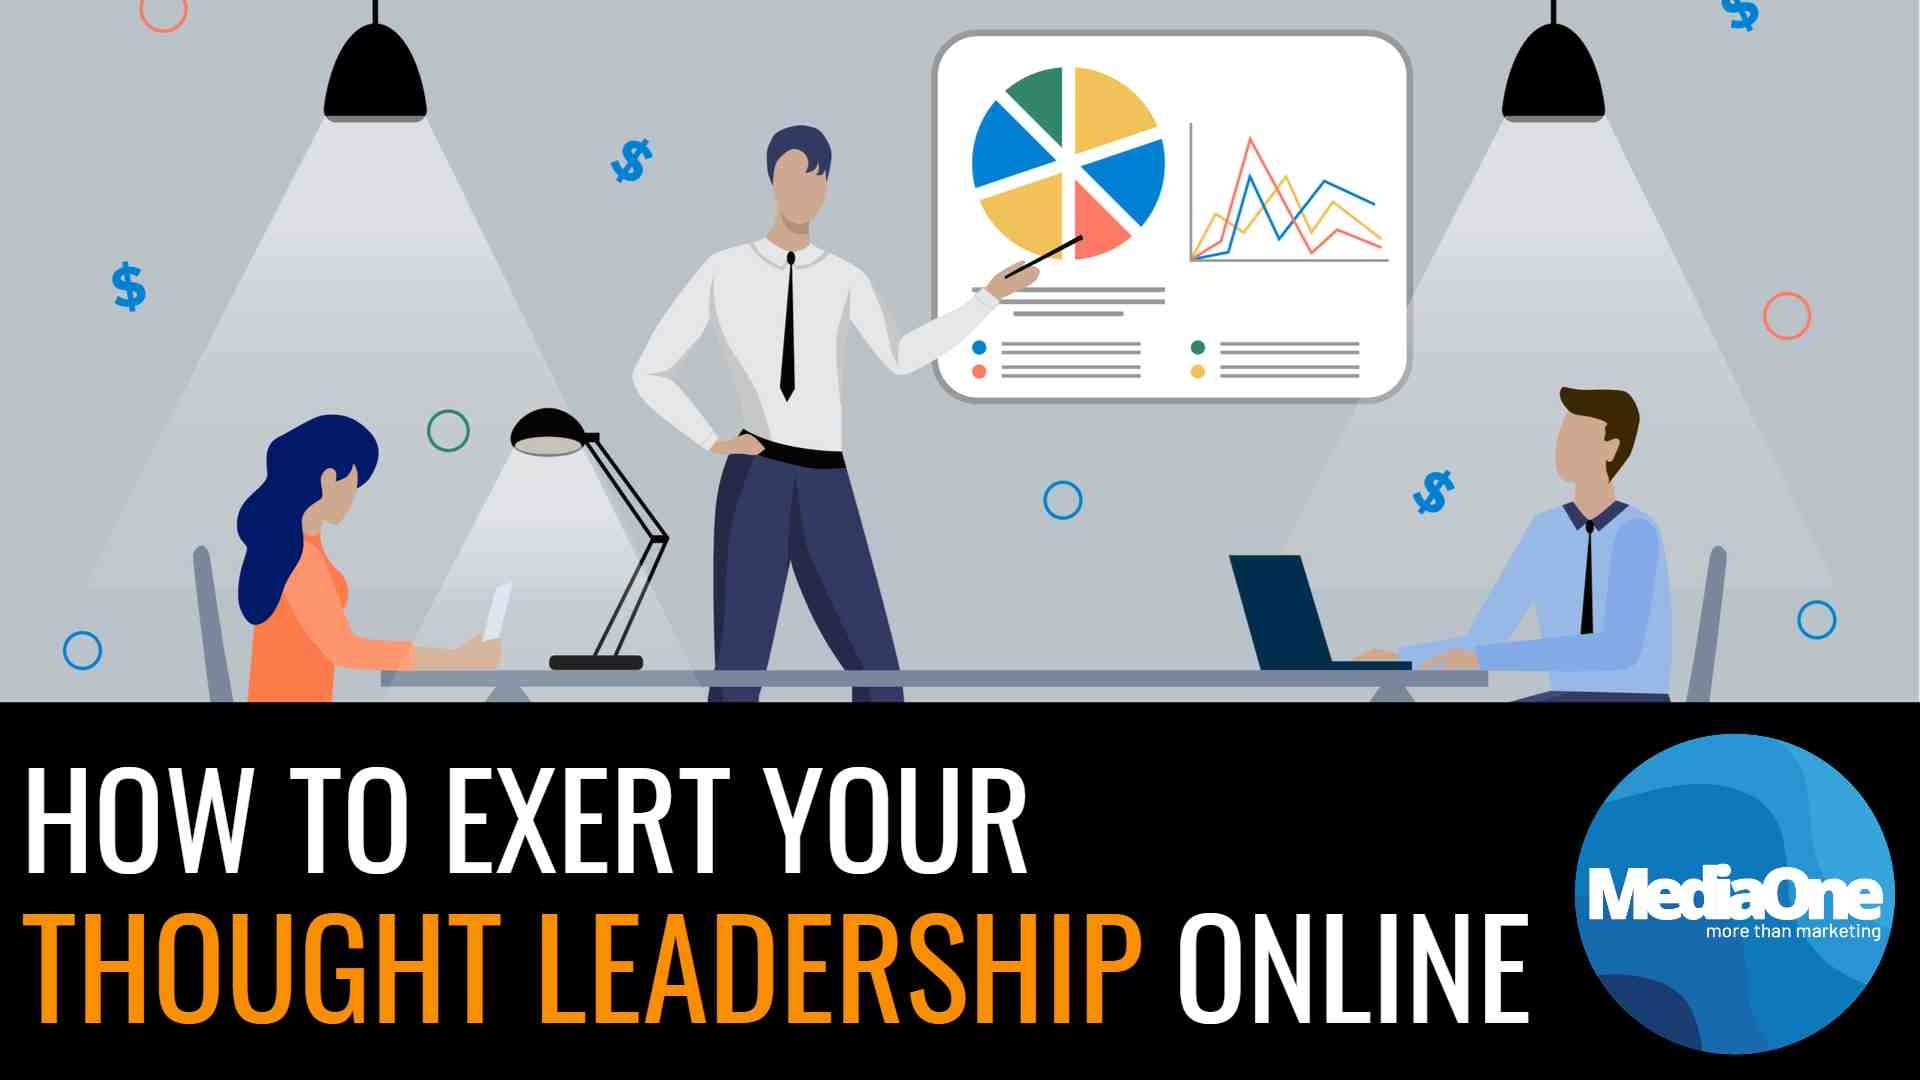 how-to-exert-your-thought-leadership-online-2